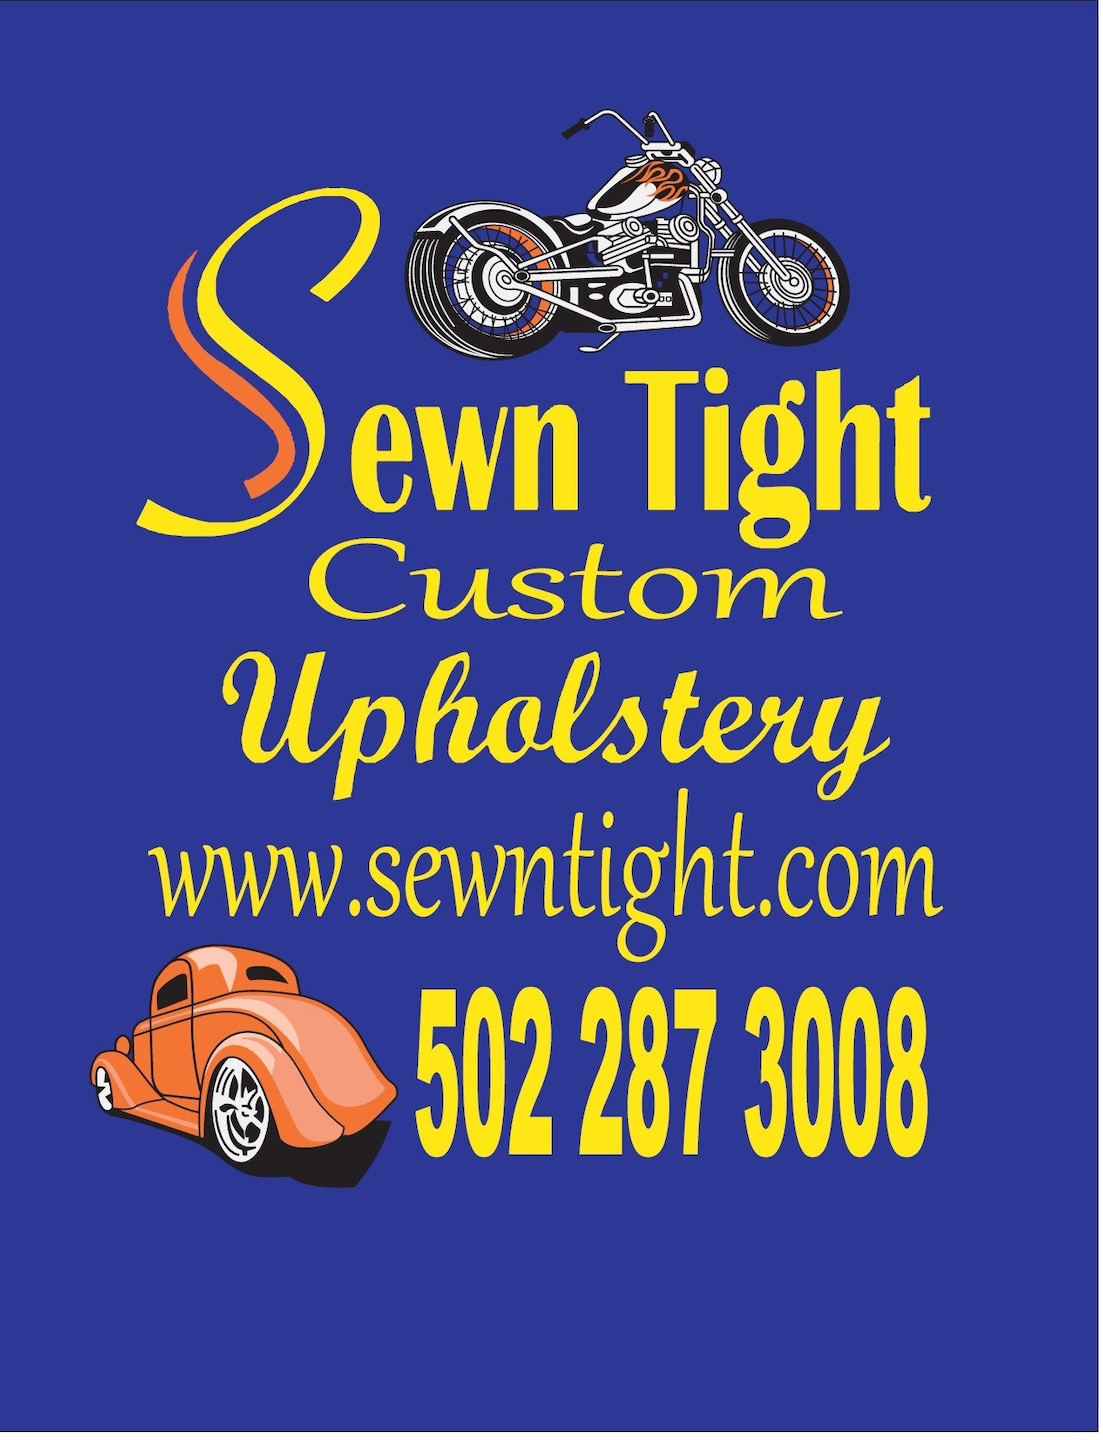 Sewn Tight Upholstery